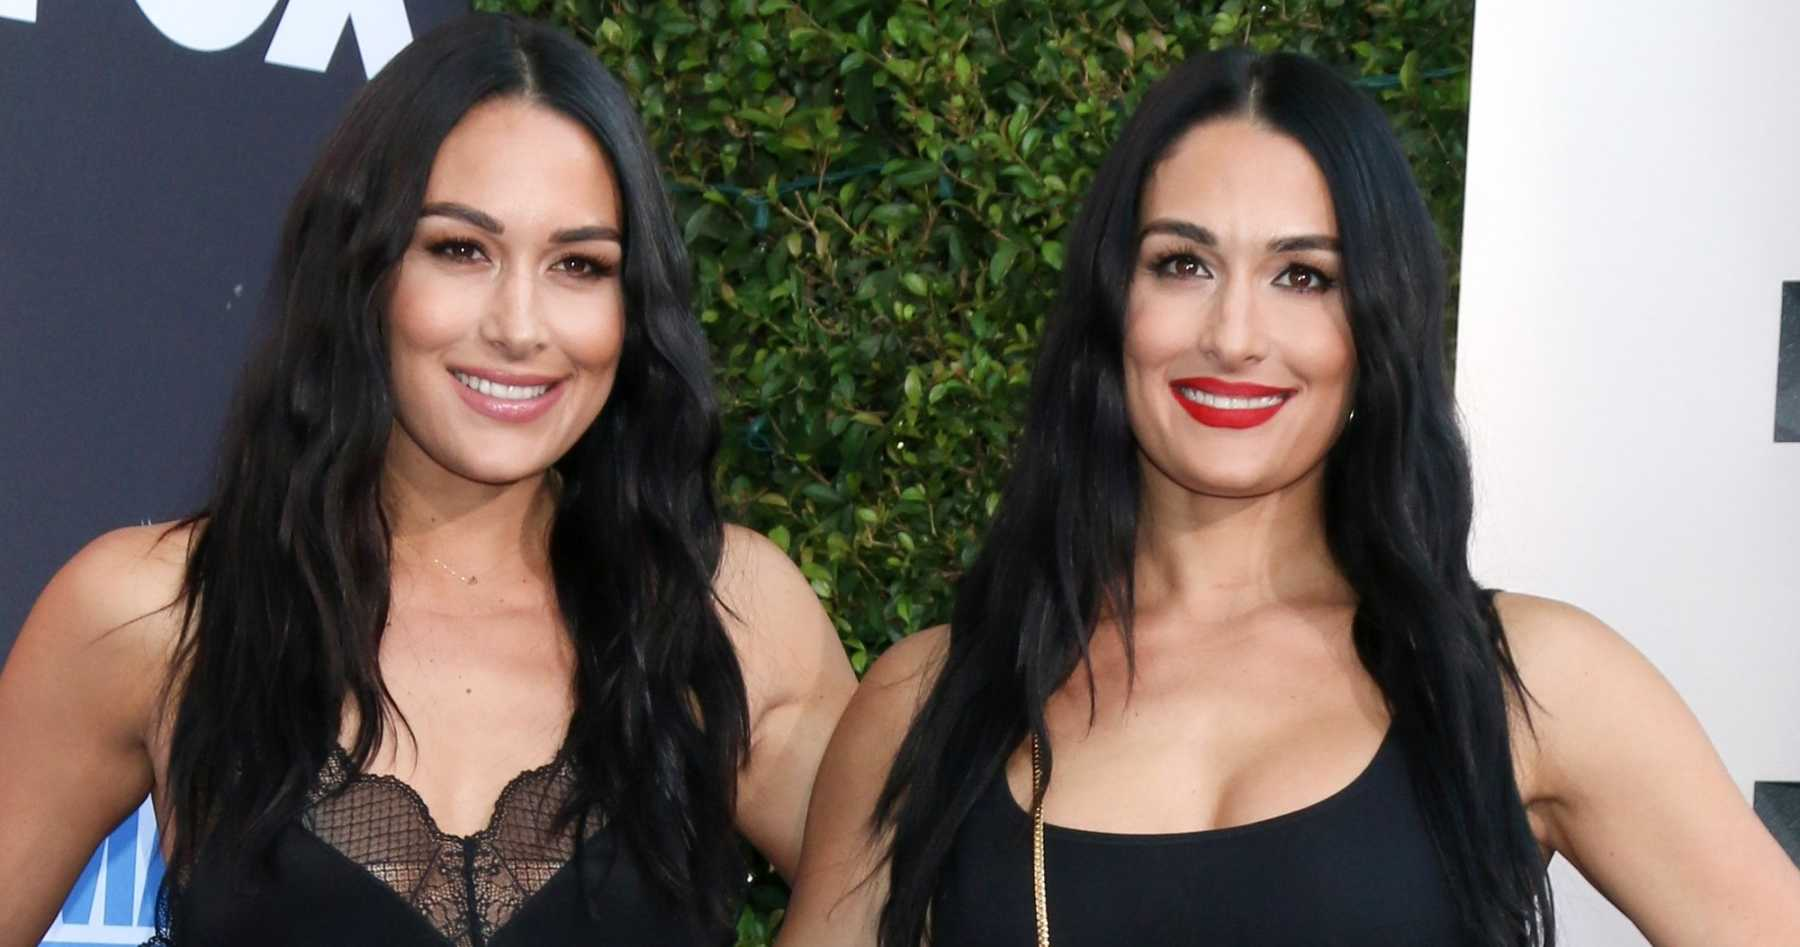 Brie and Nikki Bella go completely nude in maternity